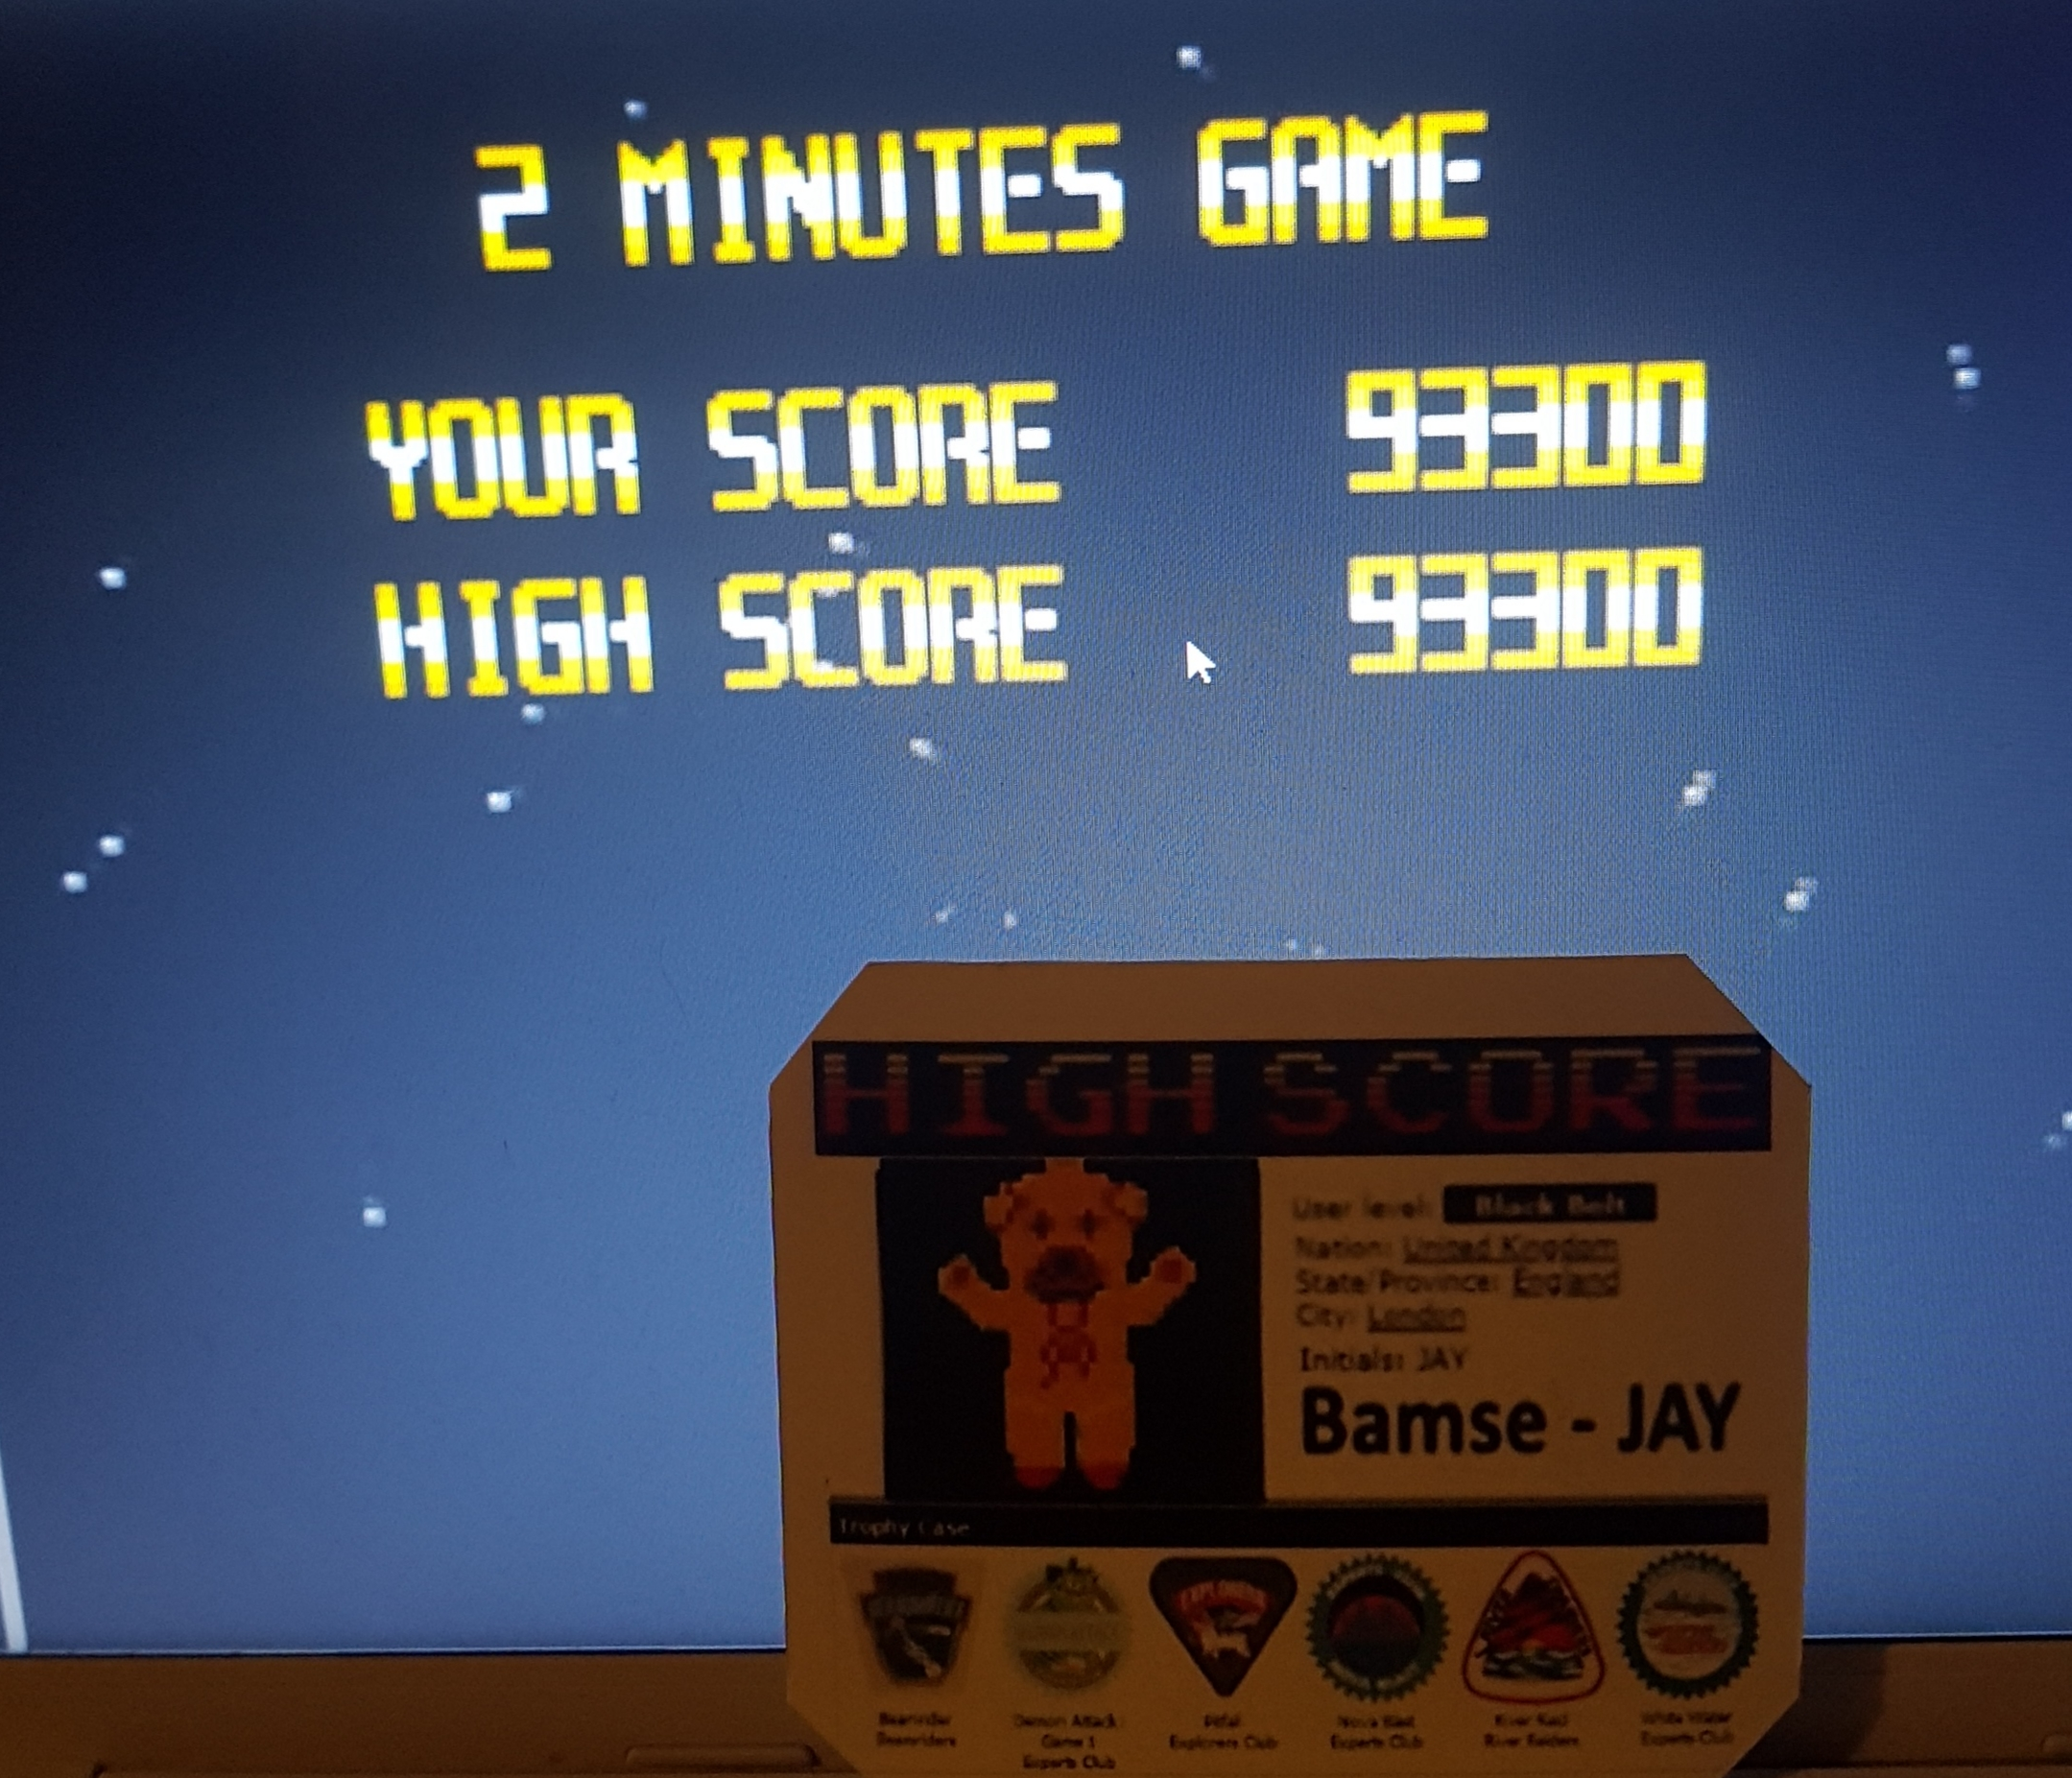 Bamse: Super Star Soldier [2 Minutes Game] (TurboGrafx-16/PC Engine Emulated) 93,300 points on 2019-10-18 15:09:28